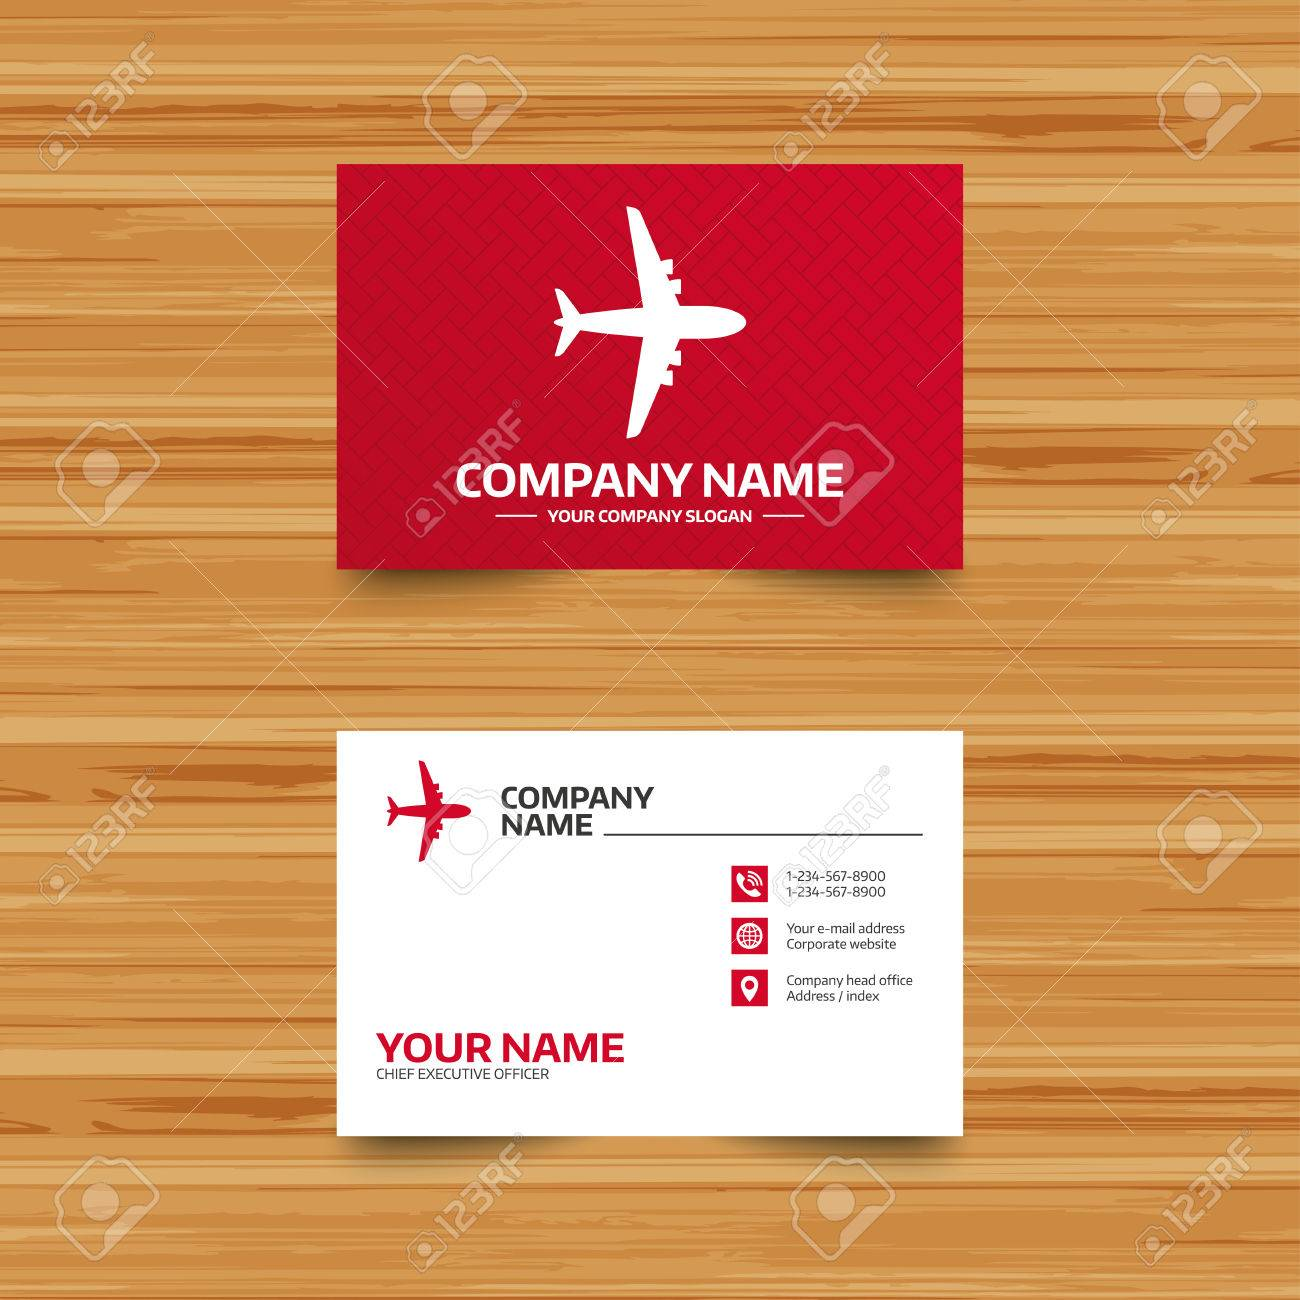 Business Card Template Airplane Sign Plane Symbol Travel Icon - Travel business card templates